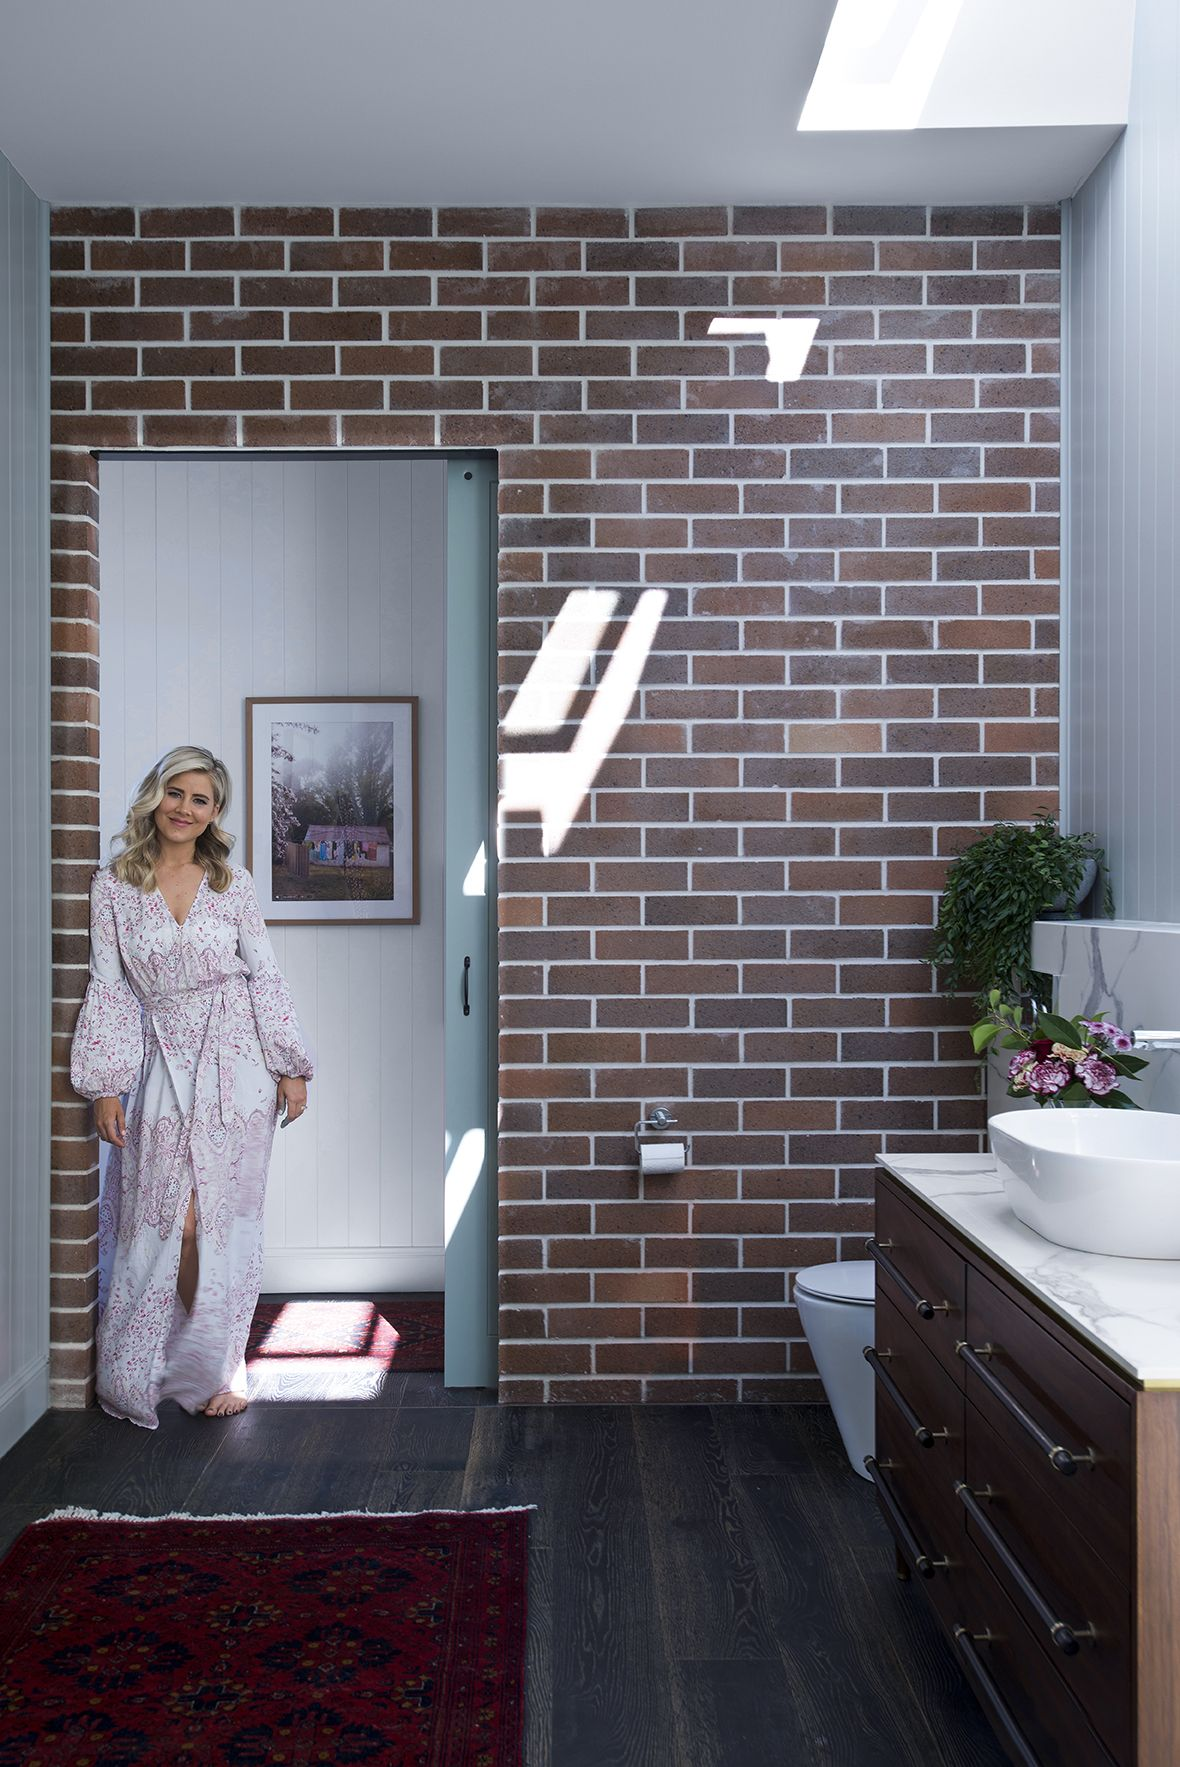 Tallebudgera Reno The Bathroom Reveal Duffy Mid Century And Modern - Renovating a bathroom what to do first